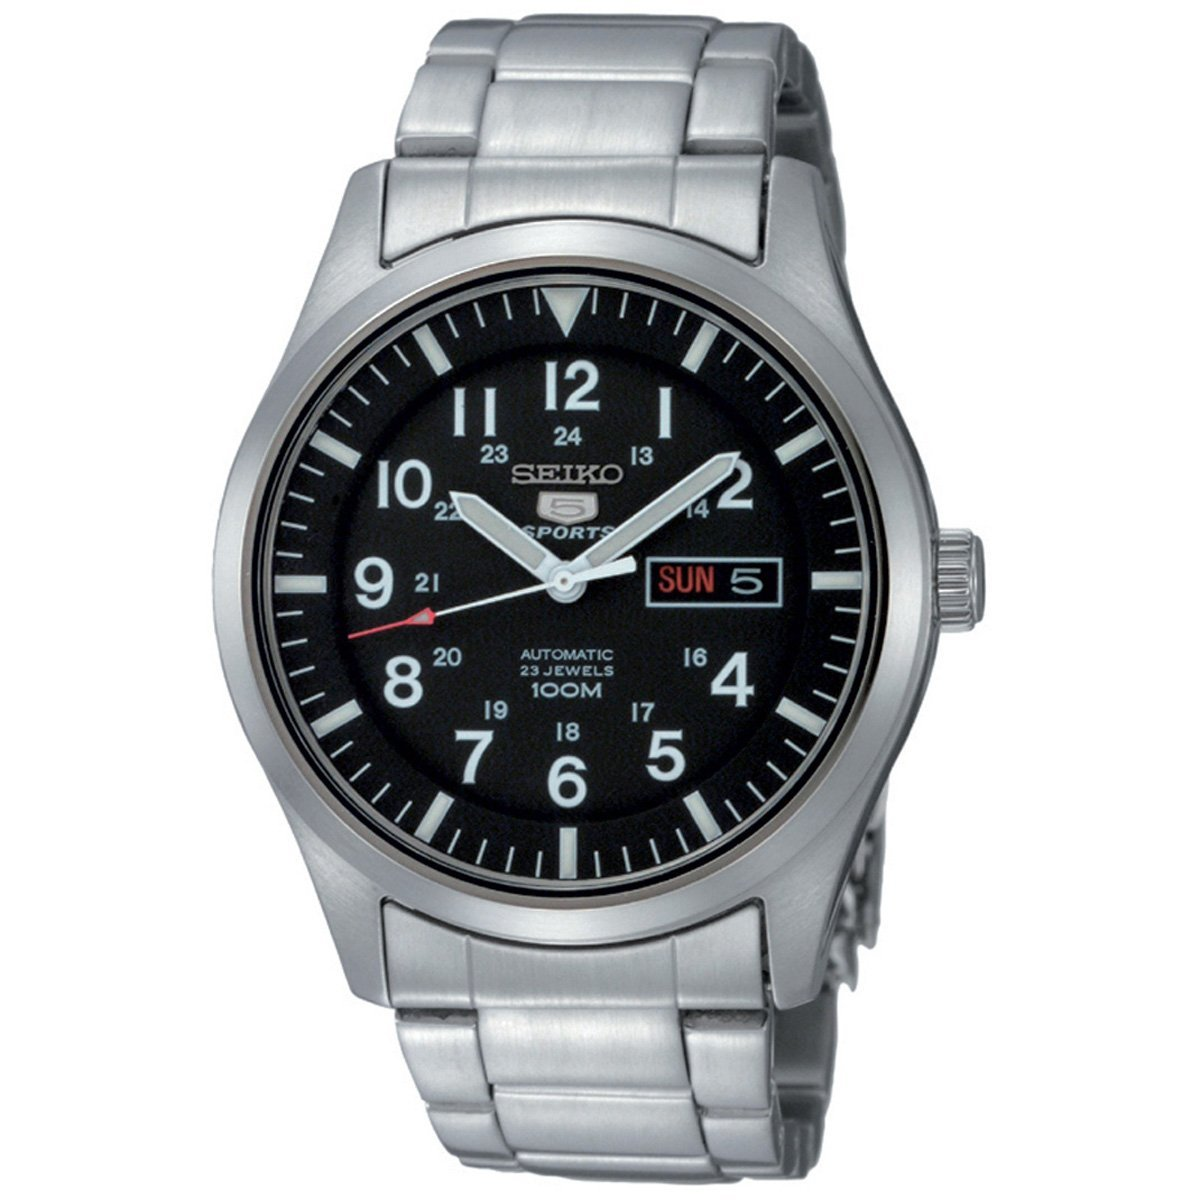 Amazon.com: Seiko 5 AutomaticBlack Dial Stainless Steel Mens Watch SNZG13K1: Seiko: Watches